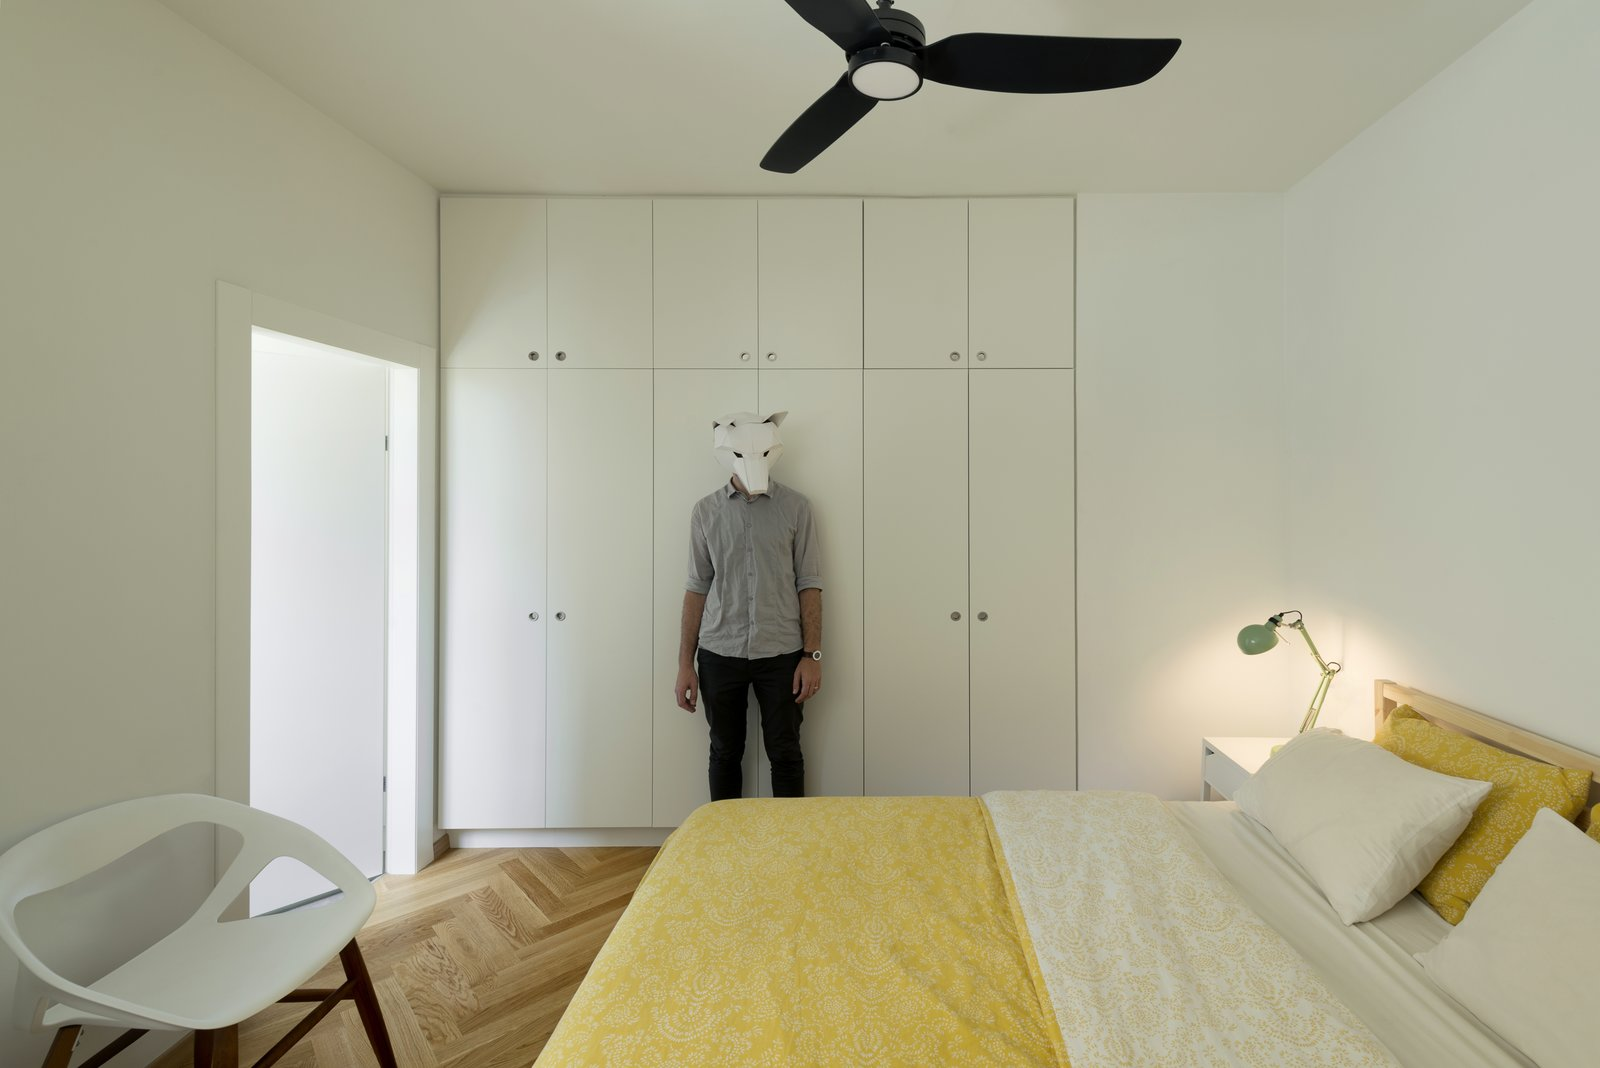 Bedroom, Light Hardwood Floor, Table Lighting, Lamps, Chair, Bed, Wardrobe, and Night Stands  Photo 8 of 14 in Graphic Design Guides an Apartment Renovation in Tel Aviv